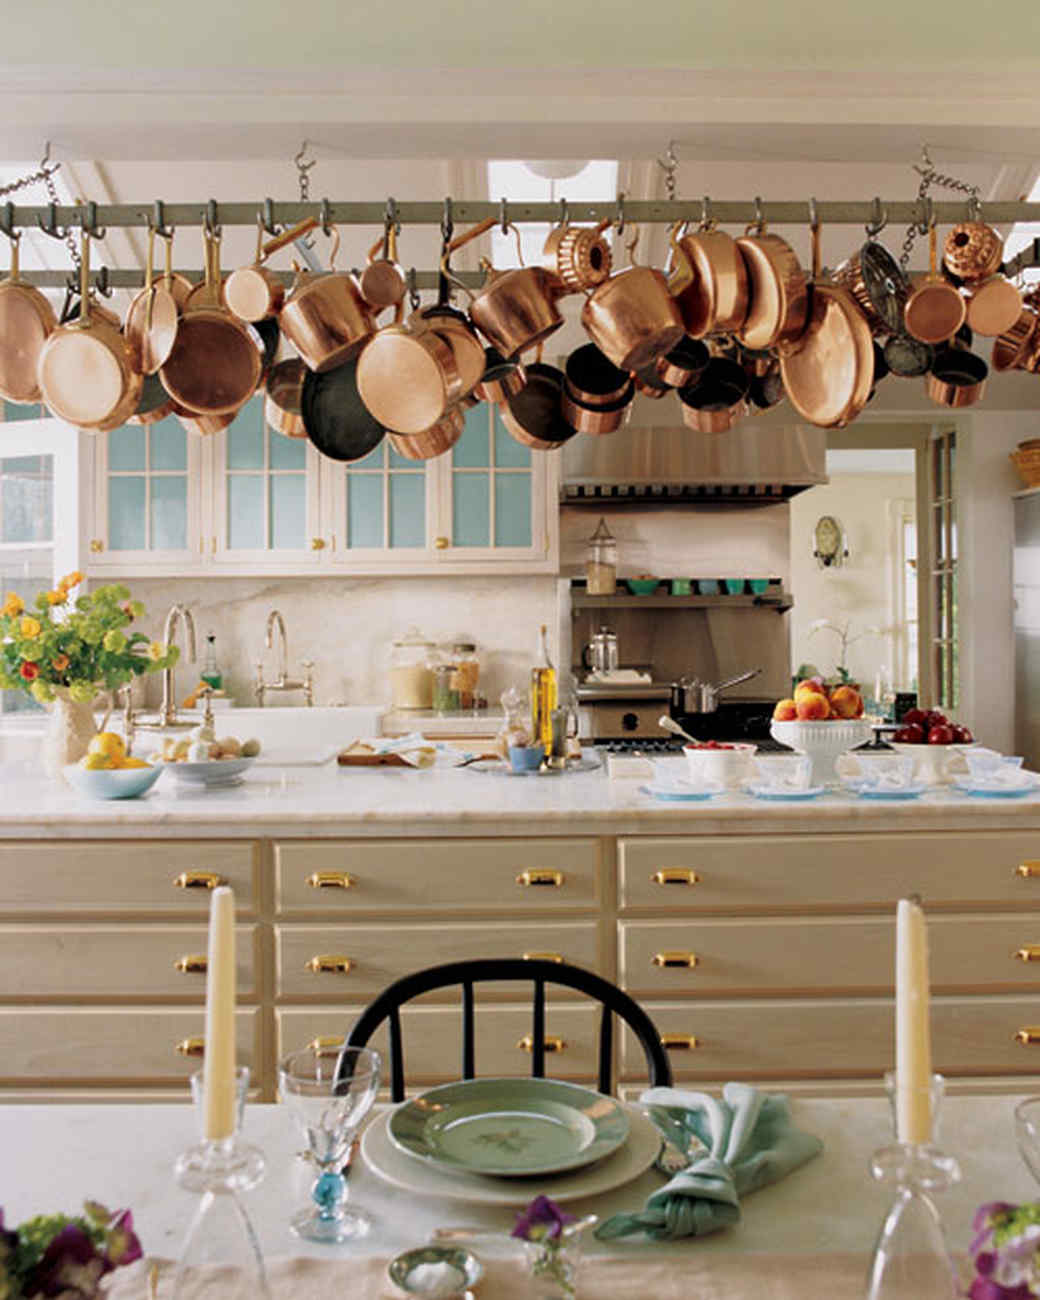 Martha Stewart Turkey Hill Kitchen Cabinets Martha's Turkey Hill Kitchen | Martha Stewart